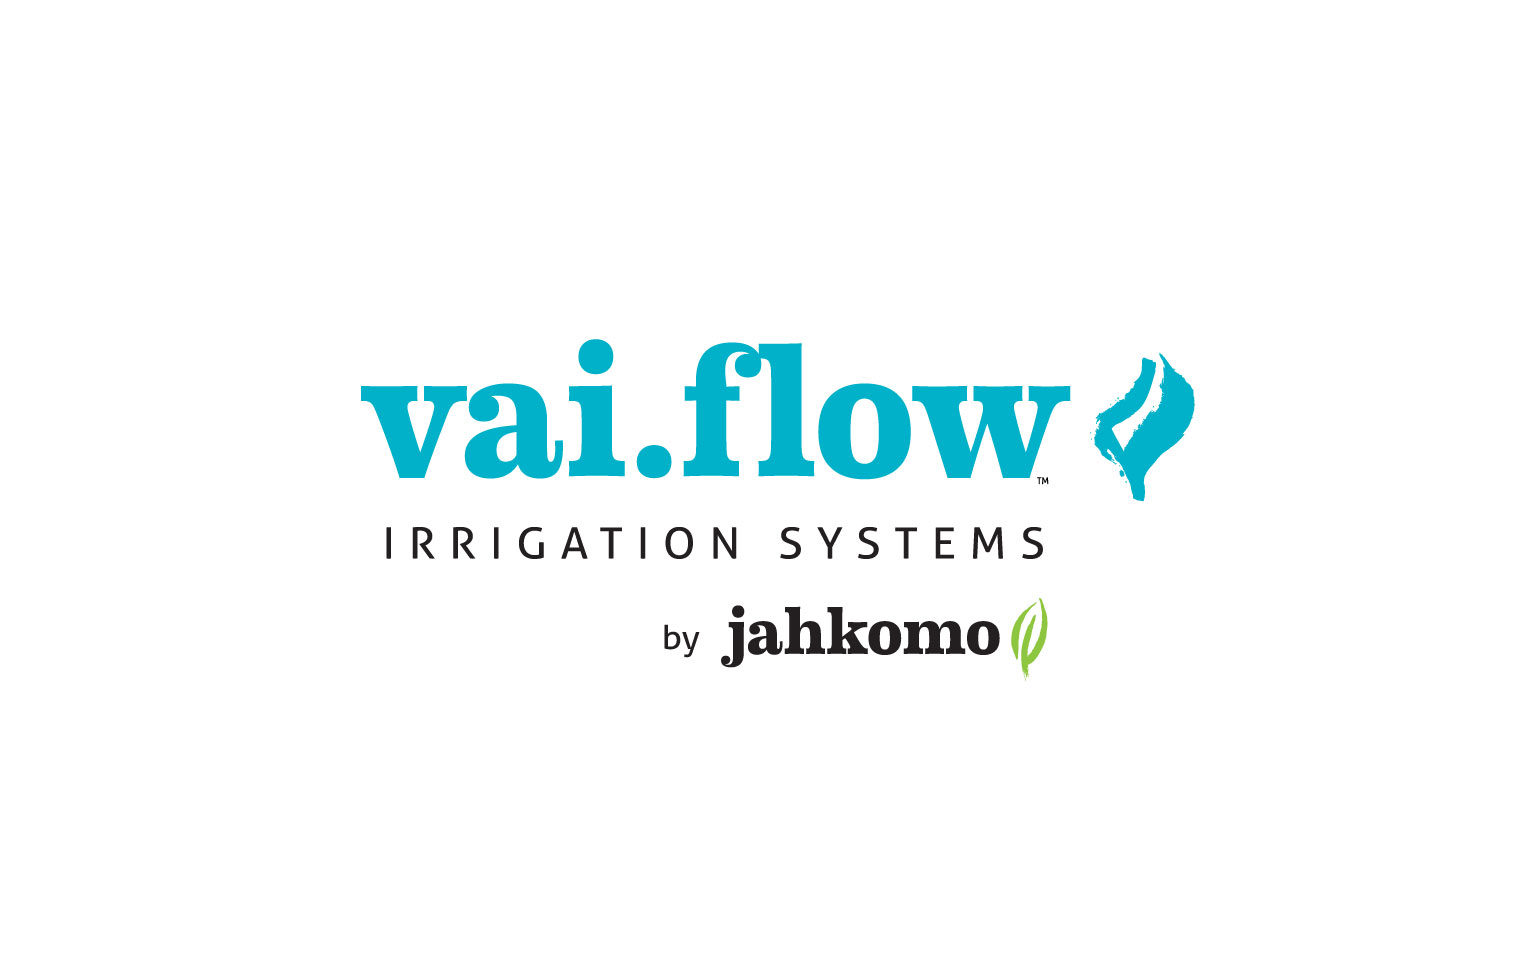 vai-flow-irrigation-systems-lg-img-6